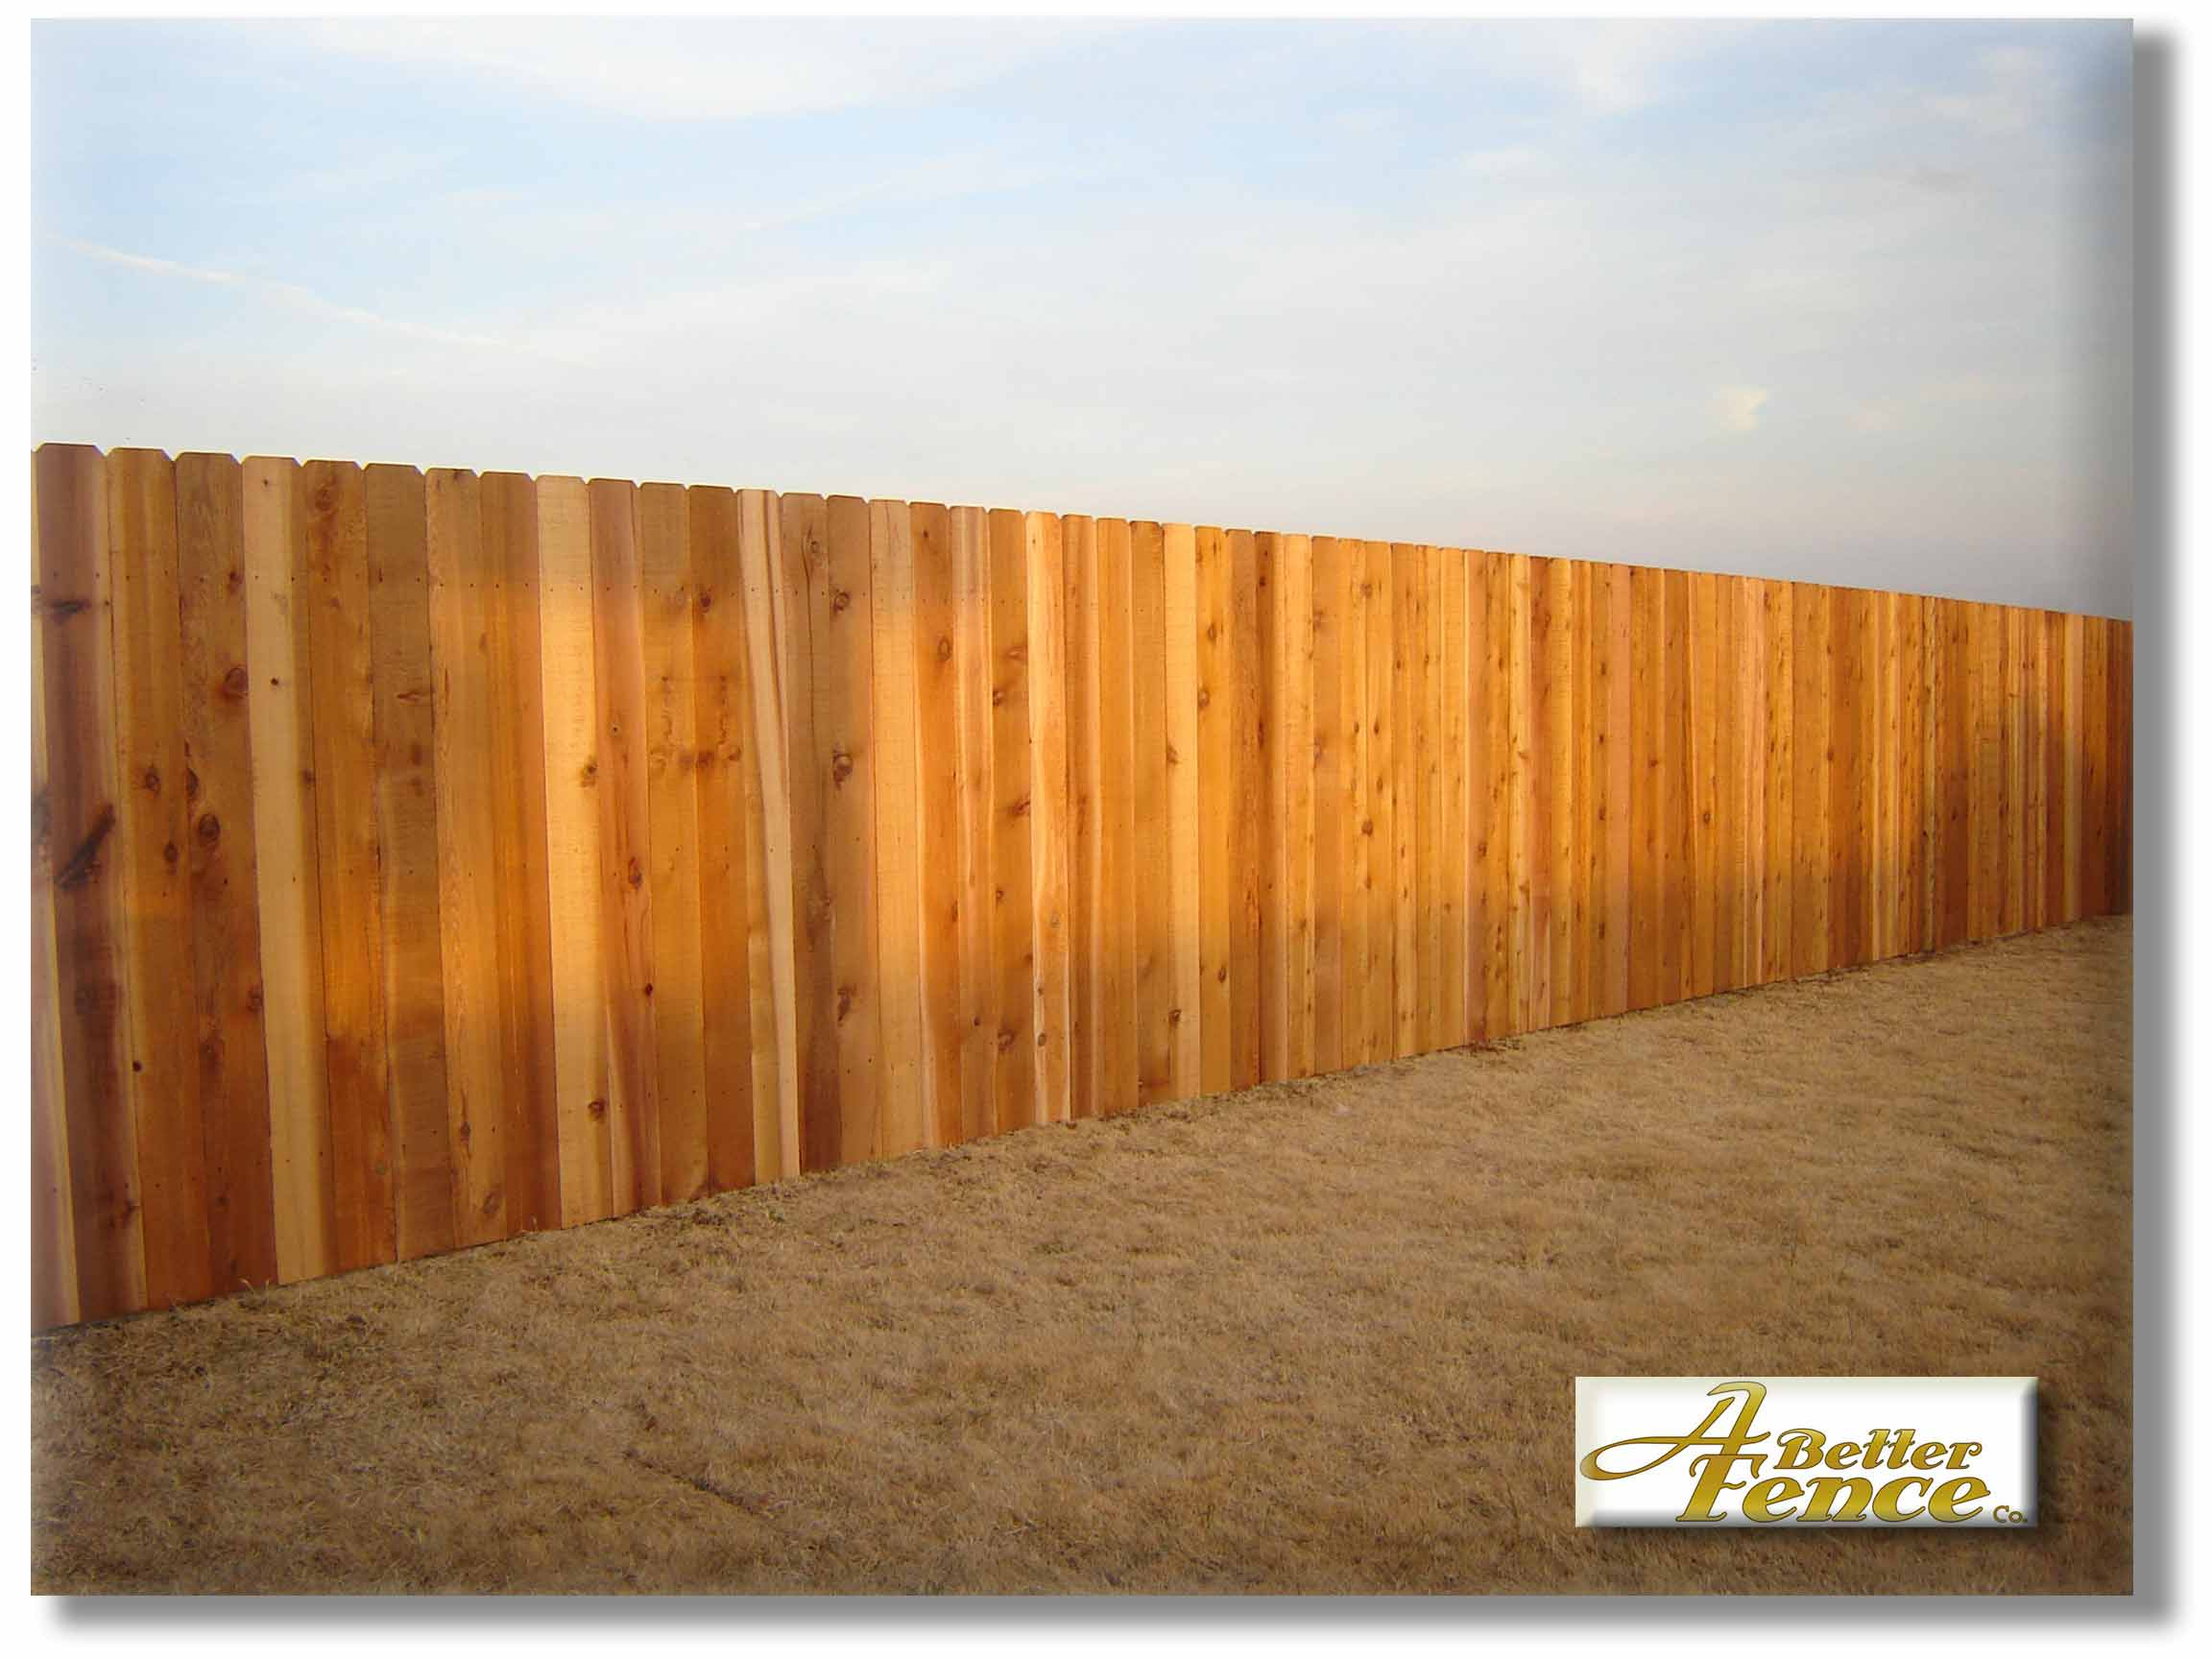 Superb img of Solid Board Western Red Cedar Privacy Fence with #C27209 color and 2304x1728 pixels